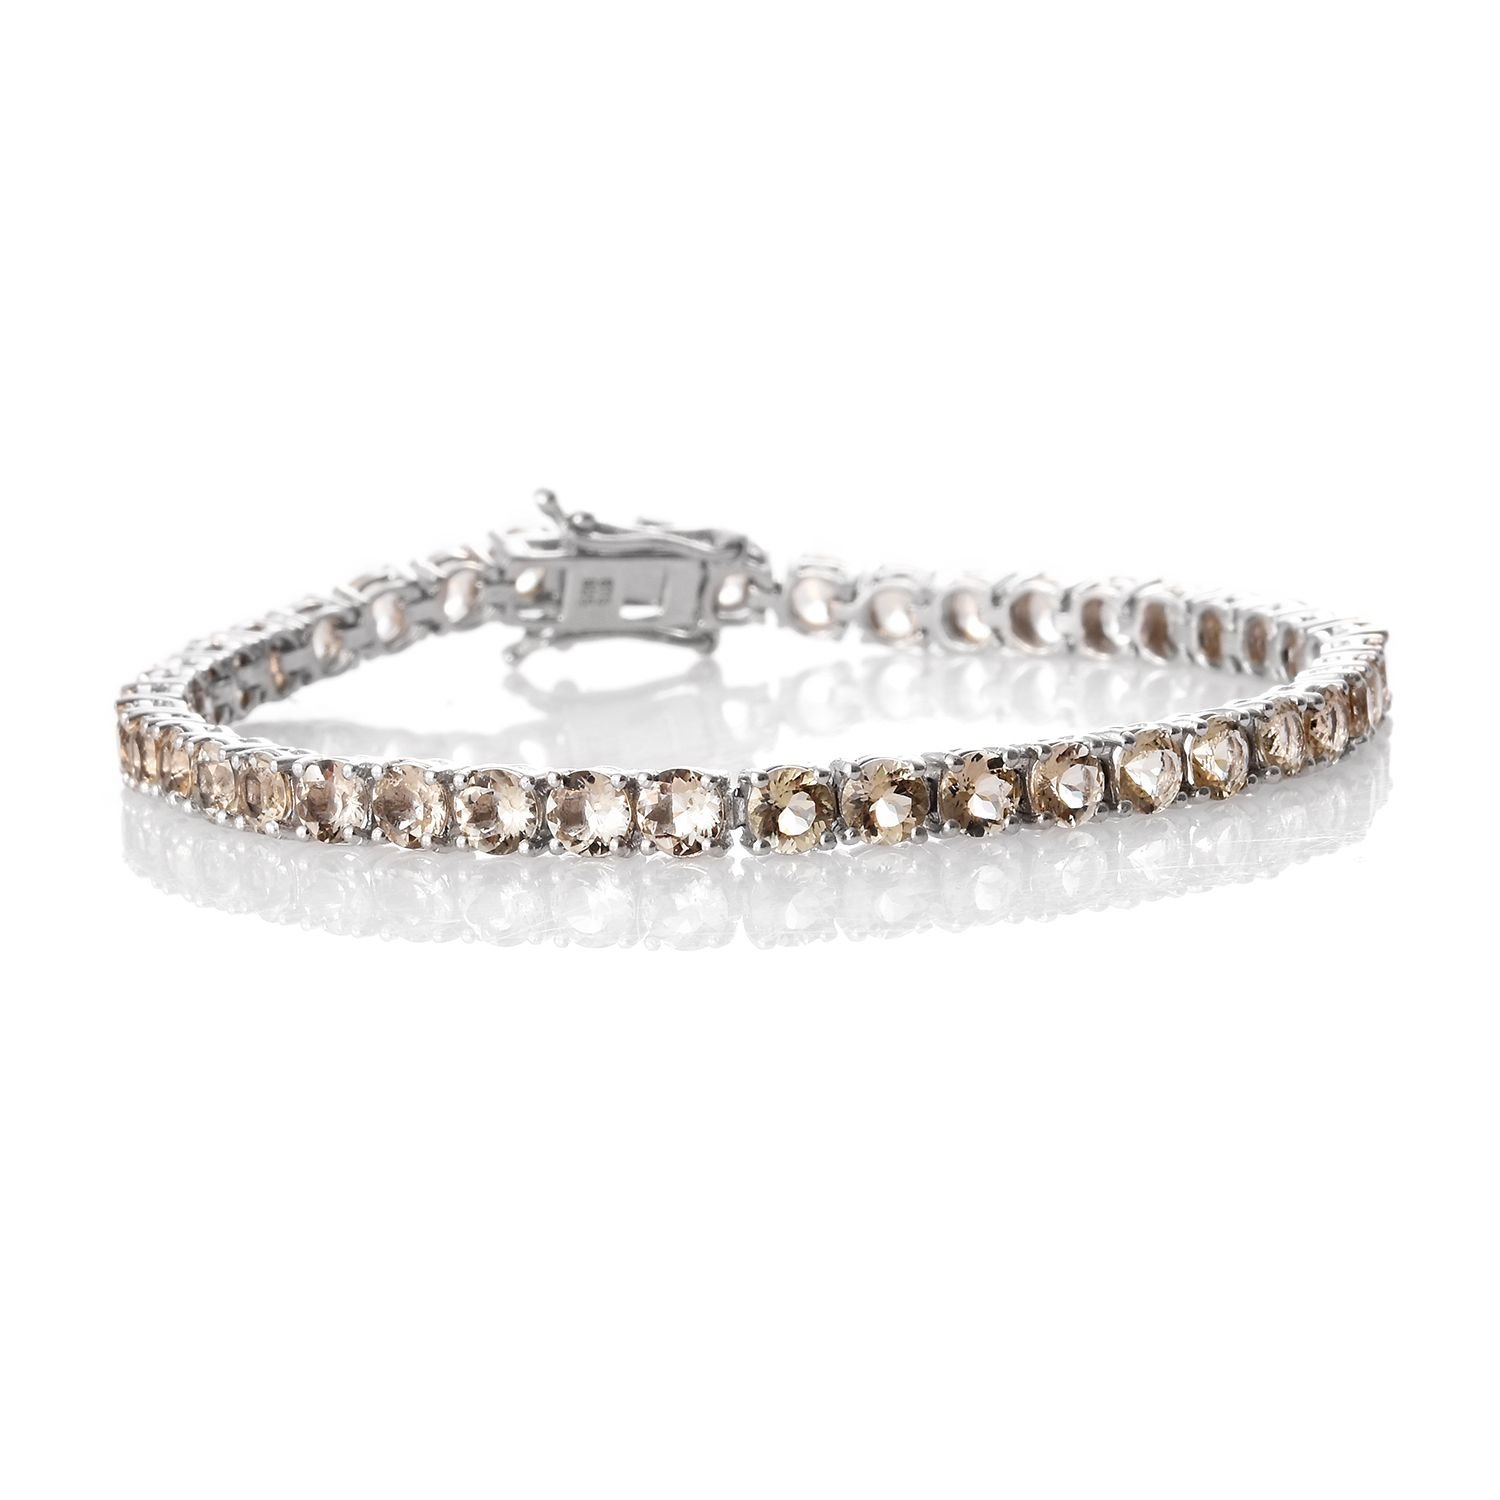 Marialite Platinum Plated Sterling Silver Straight Line Bracelet 6.72 cttw.7.50 In